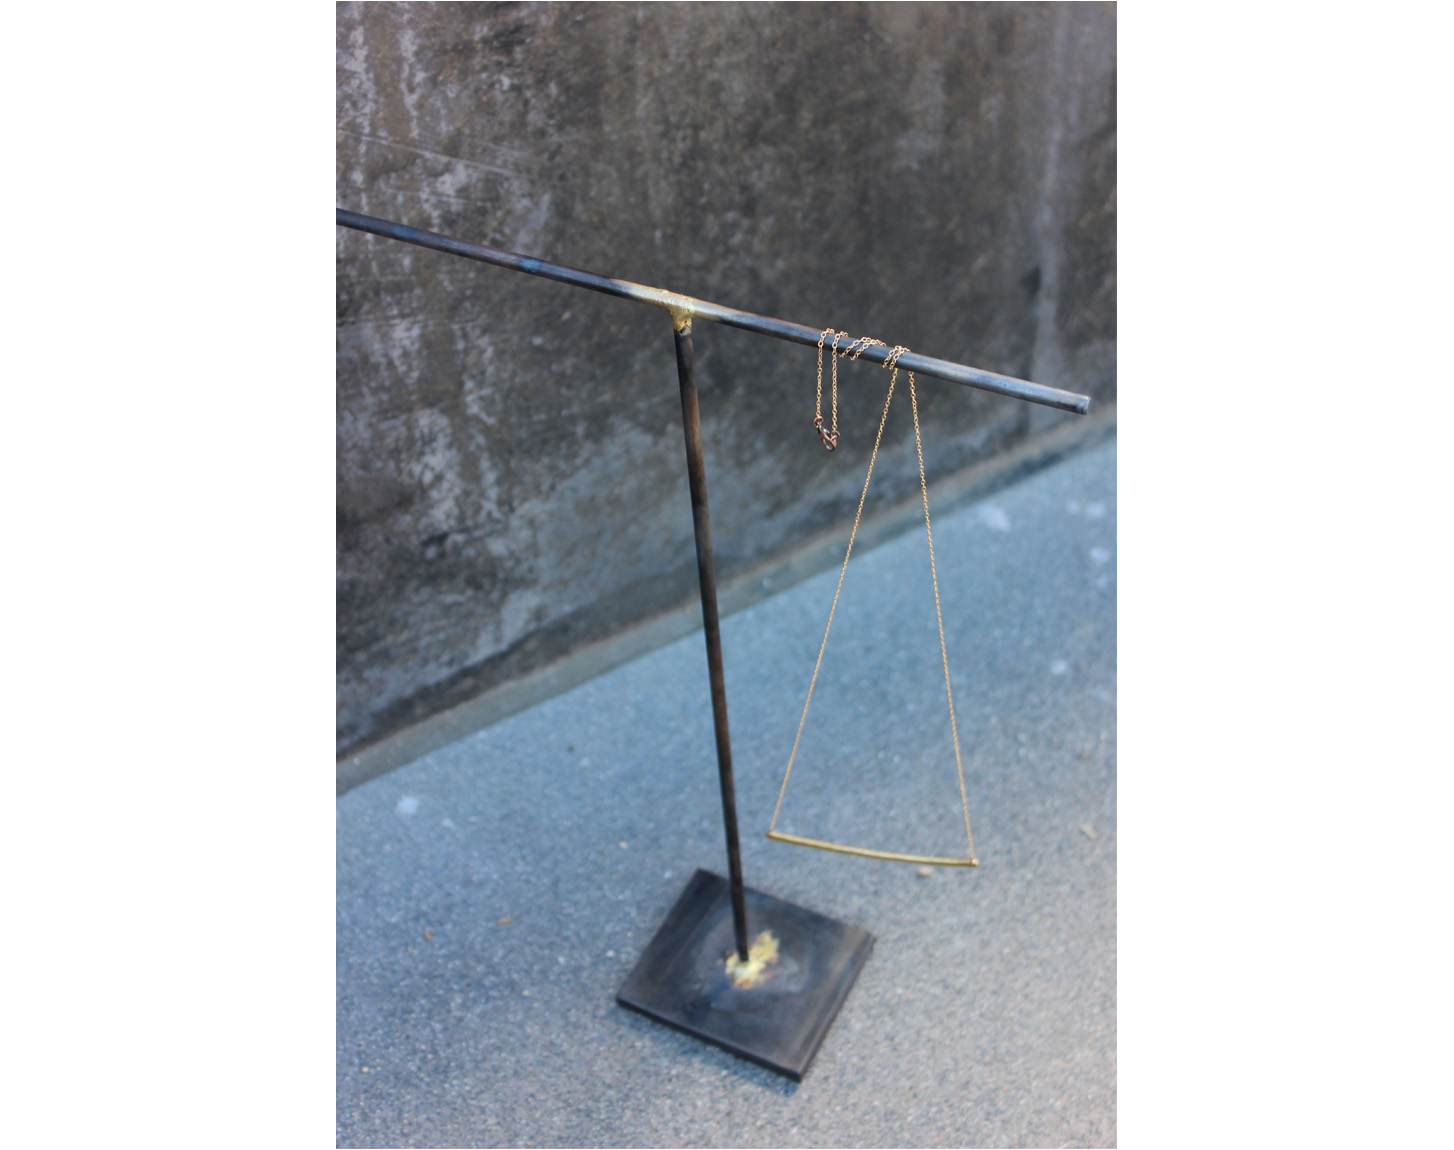 necklace stand overall.jpg